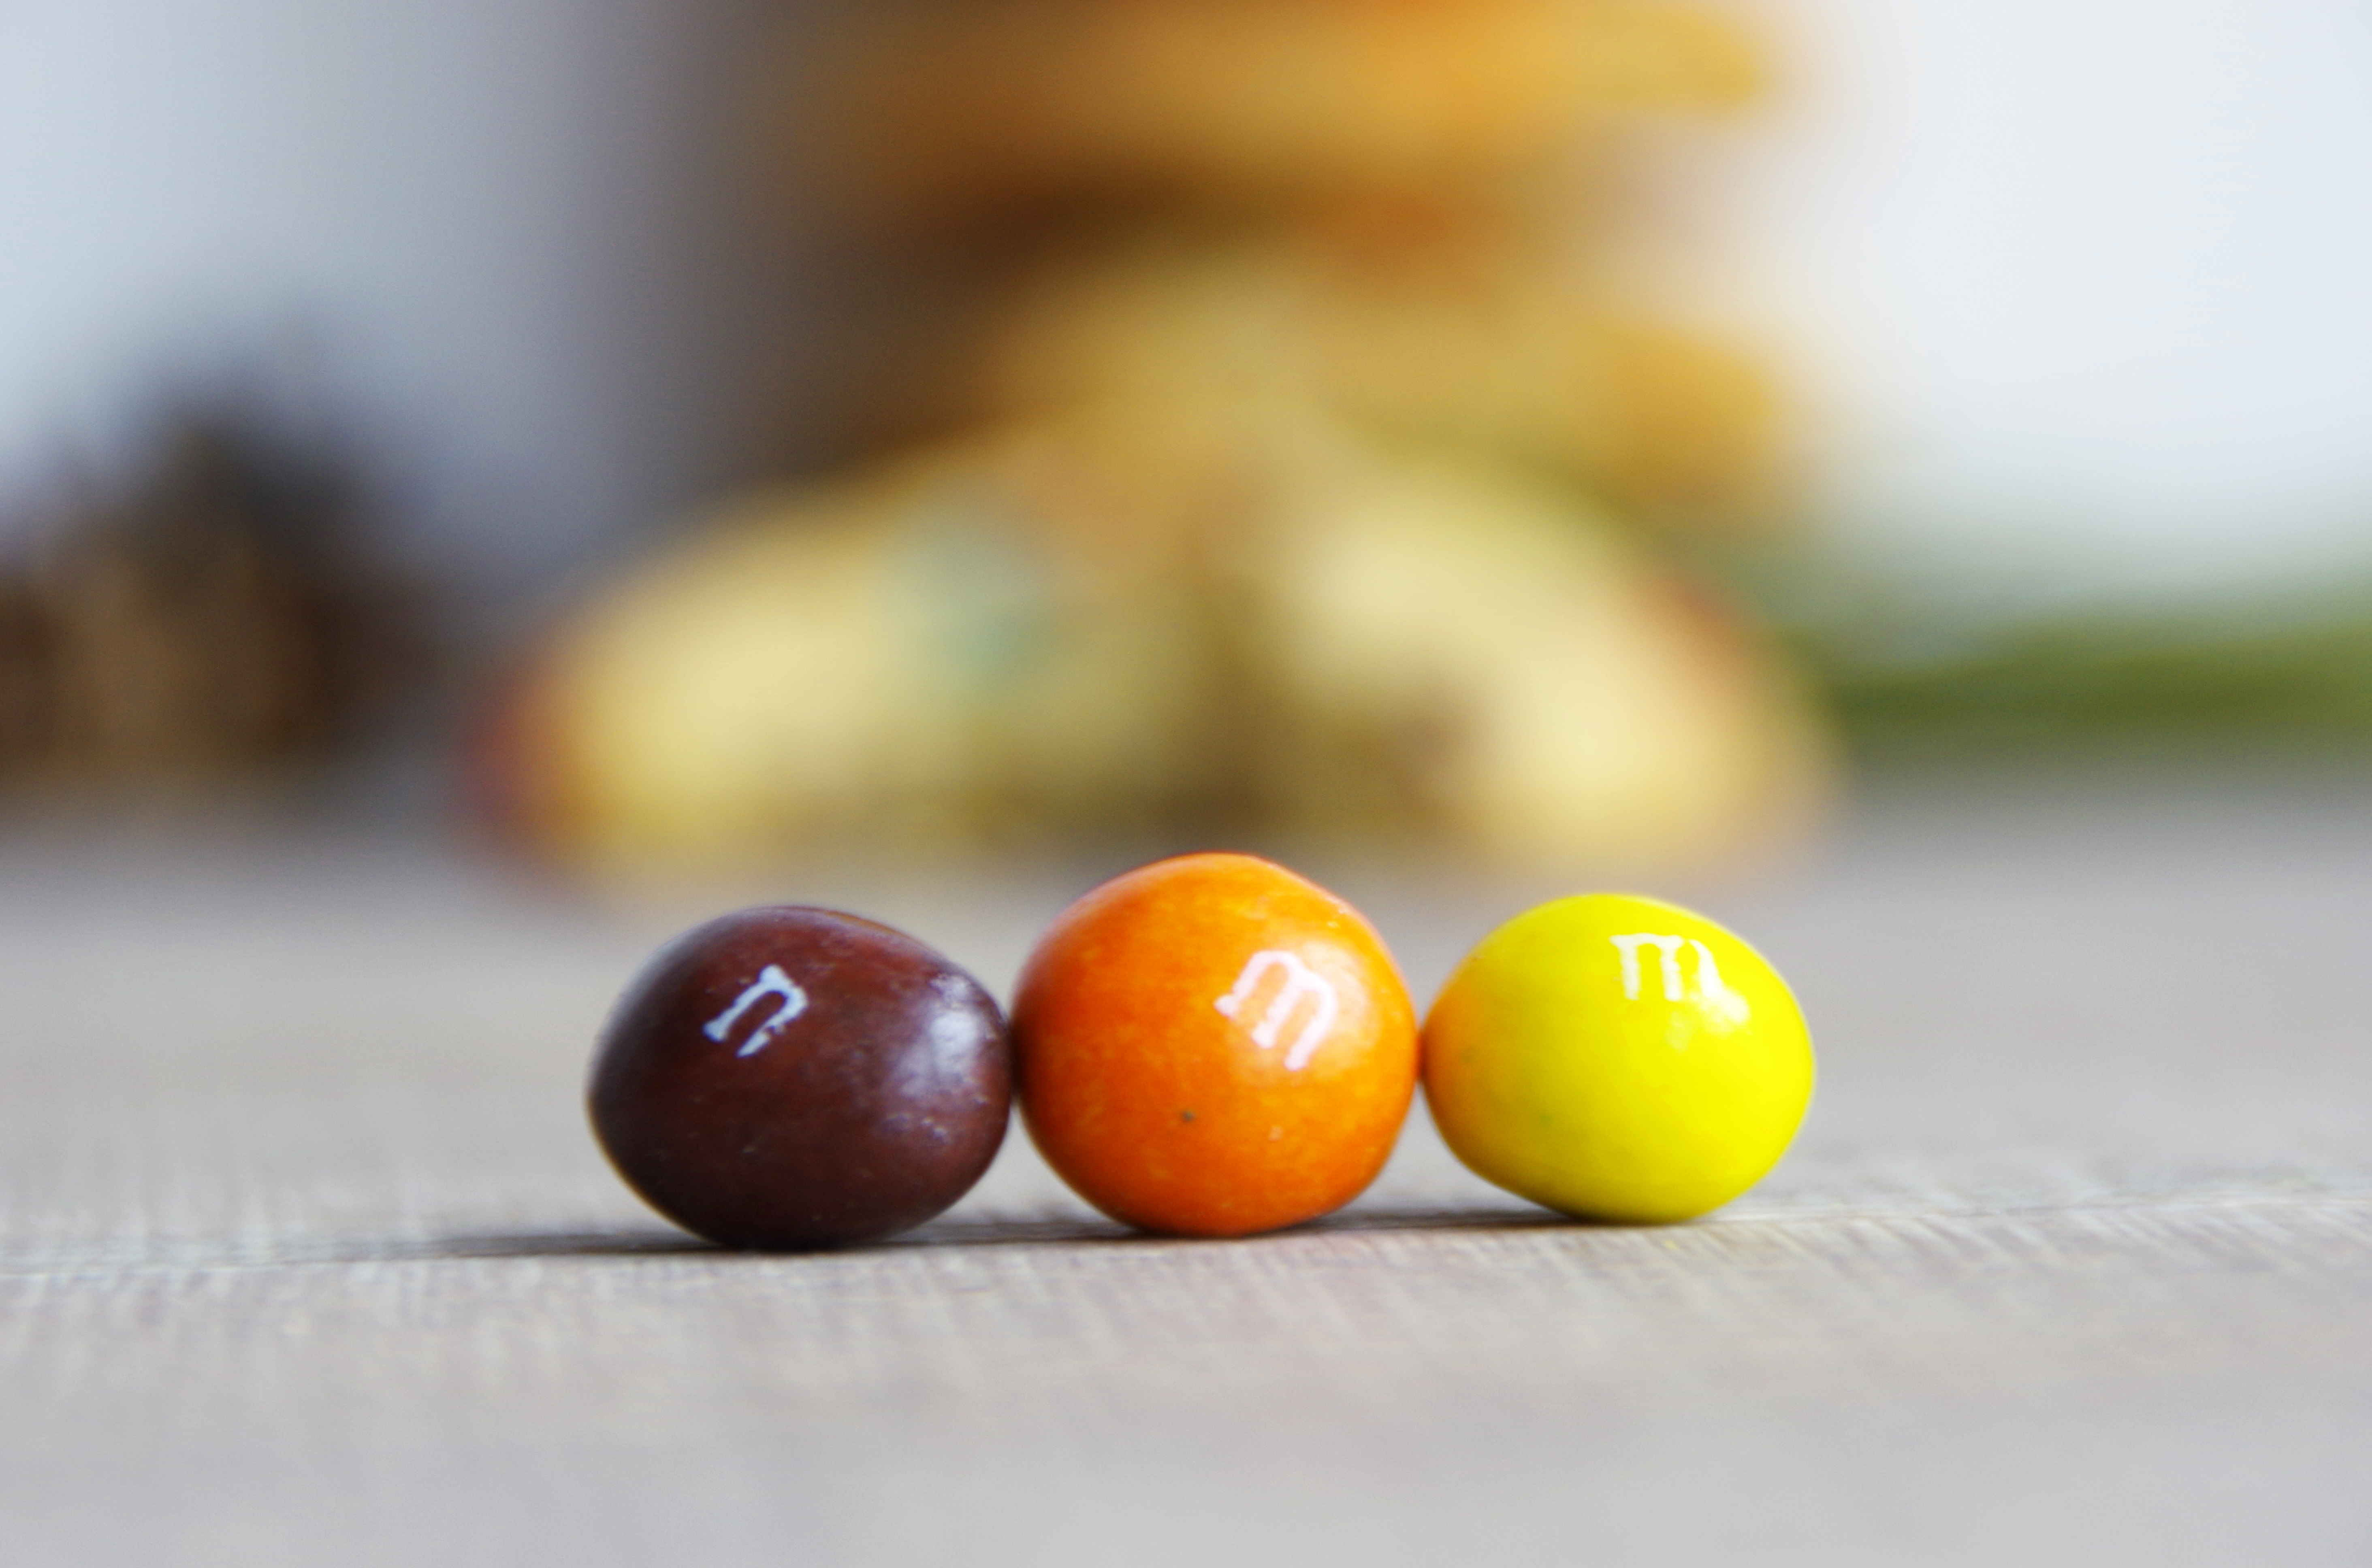 Triple M&M's for cookies